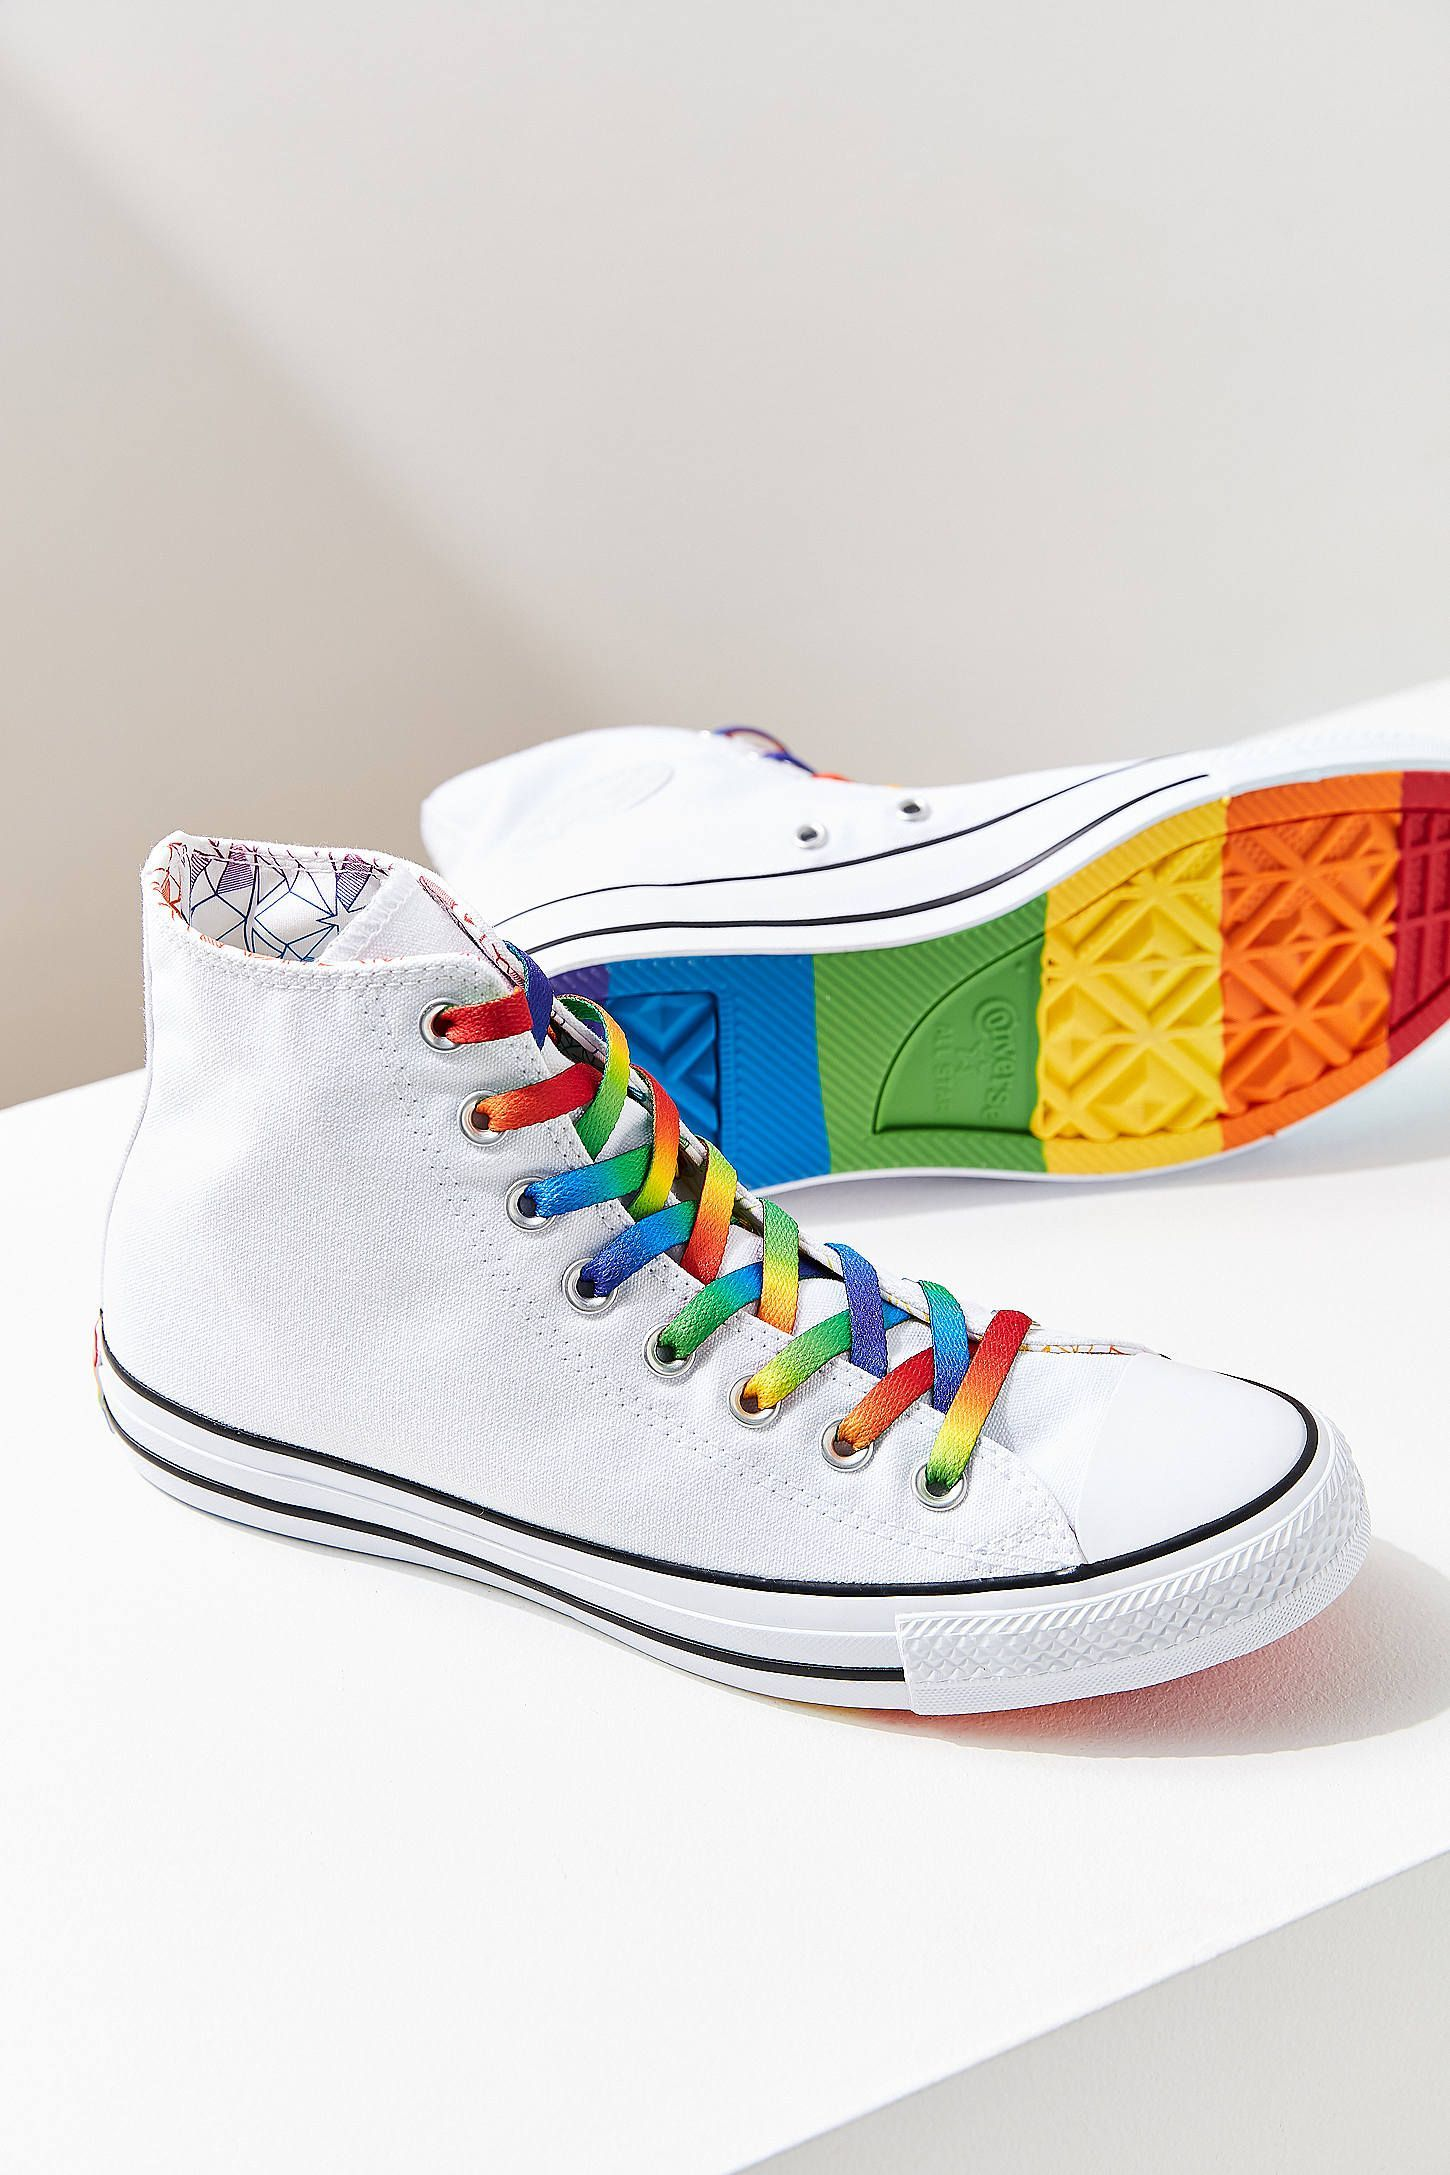 ac1615a83fa9 Slide View  1  Converse Chuck Taylor All Star Pride Core High Top Sneaker